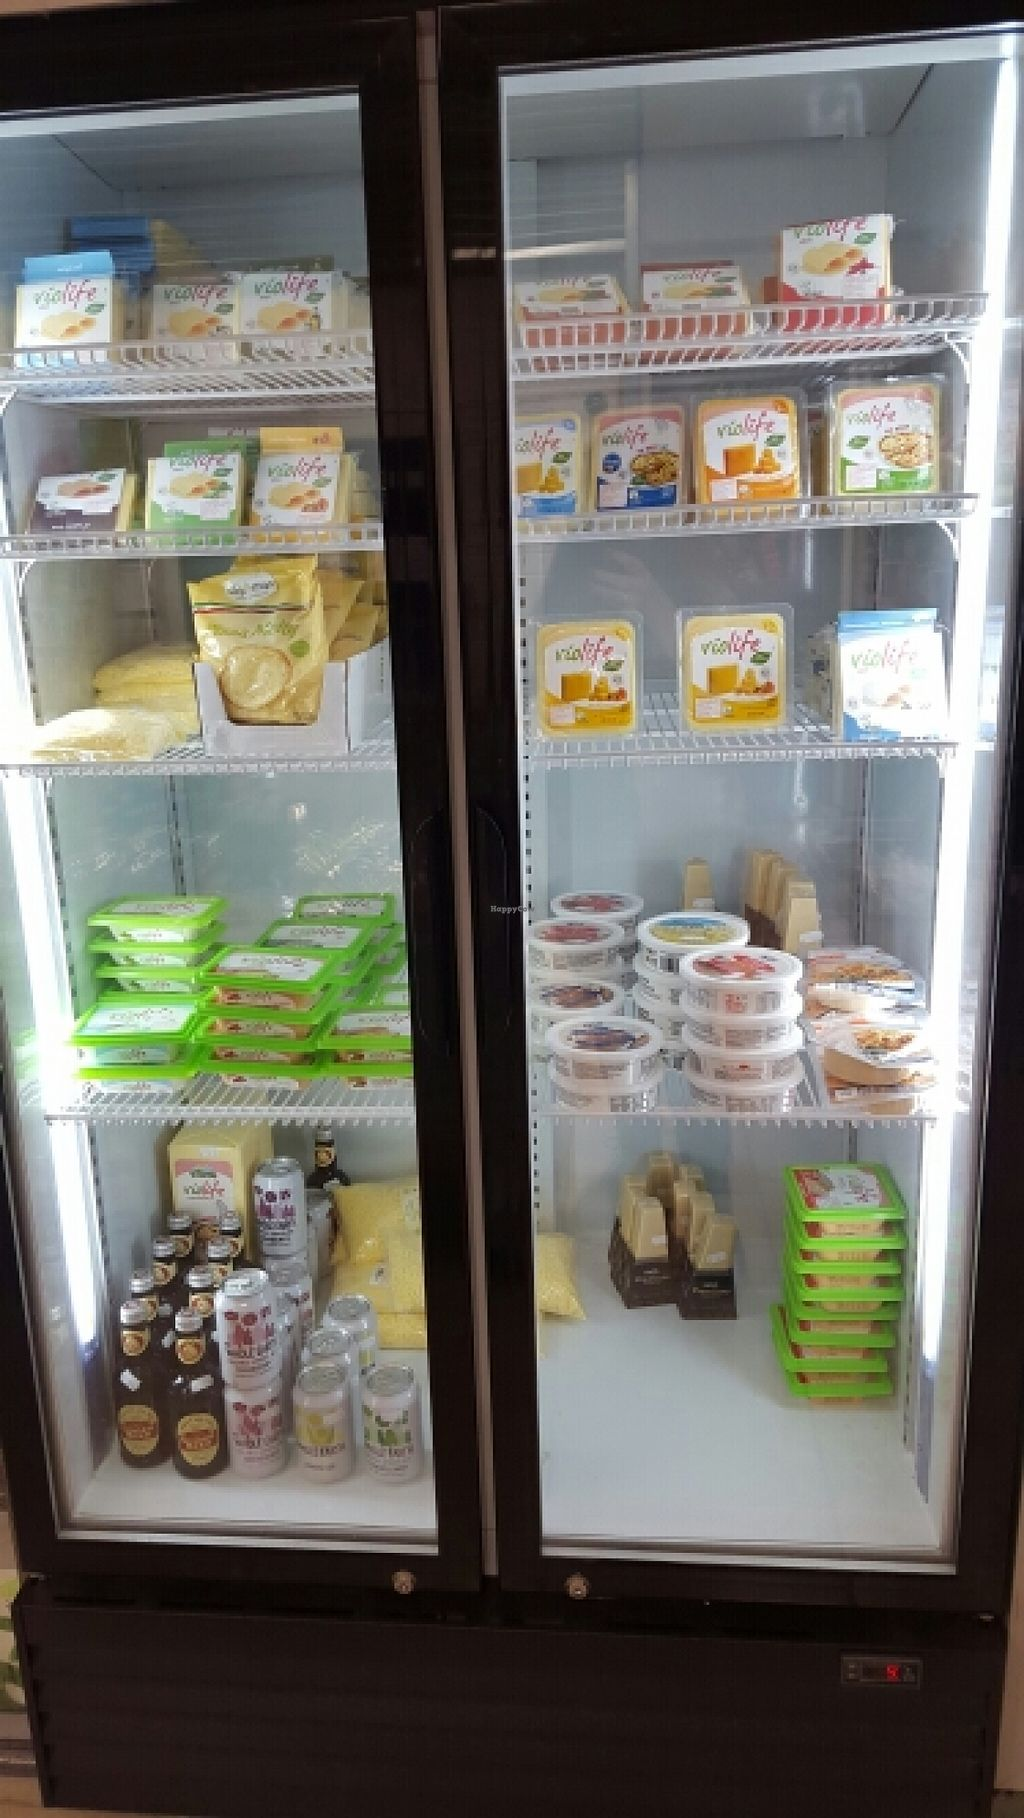 """Photo of Alternative Stores  by <a href=""""/members/profile/Melanie%20vaa"""">Melanie vaa</a> <br/>vegan cheese  <br/> February 5, 2016  - <a href='/contact/abuse/image/15169/135111'>Report</a>"""